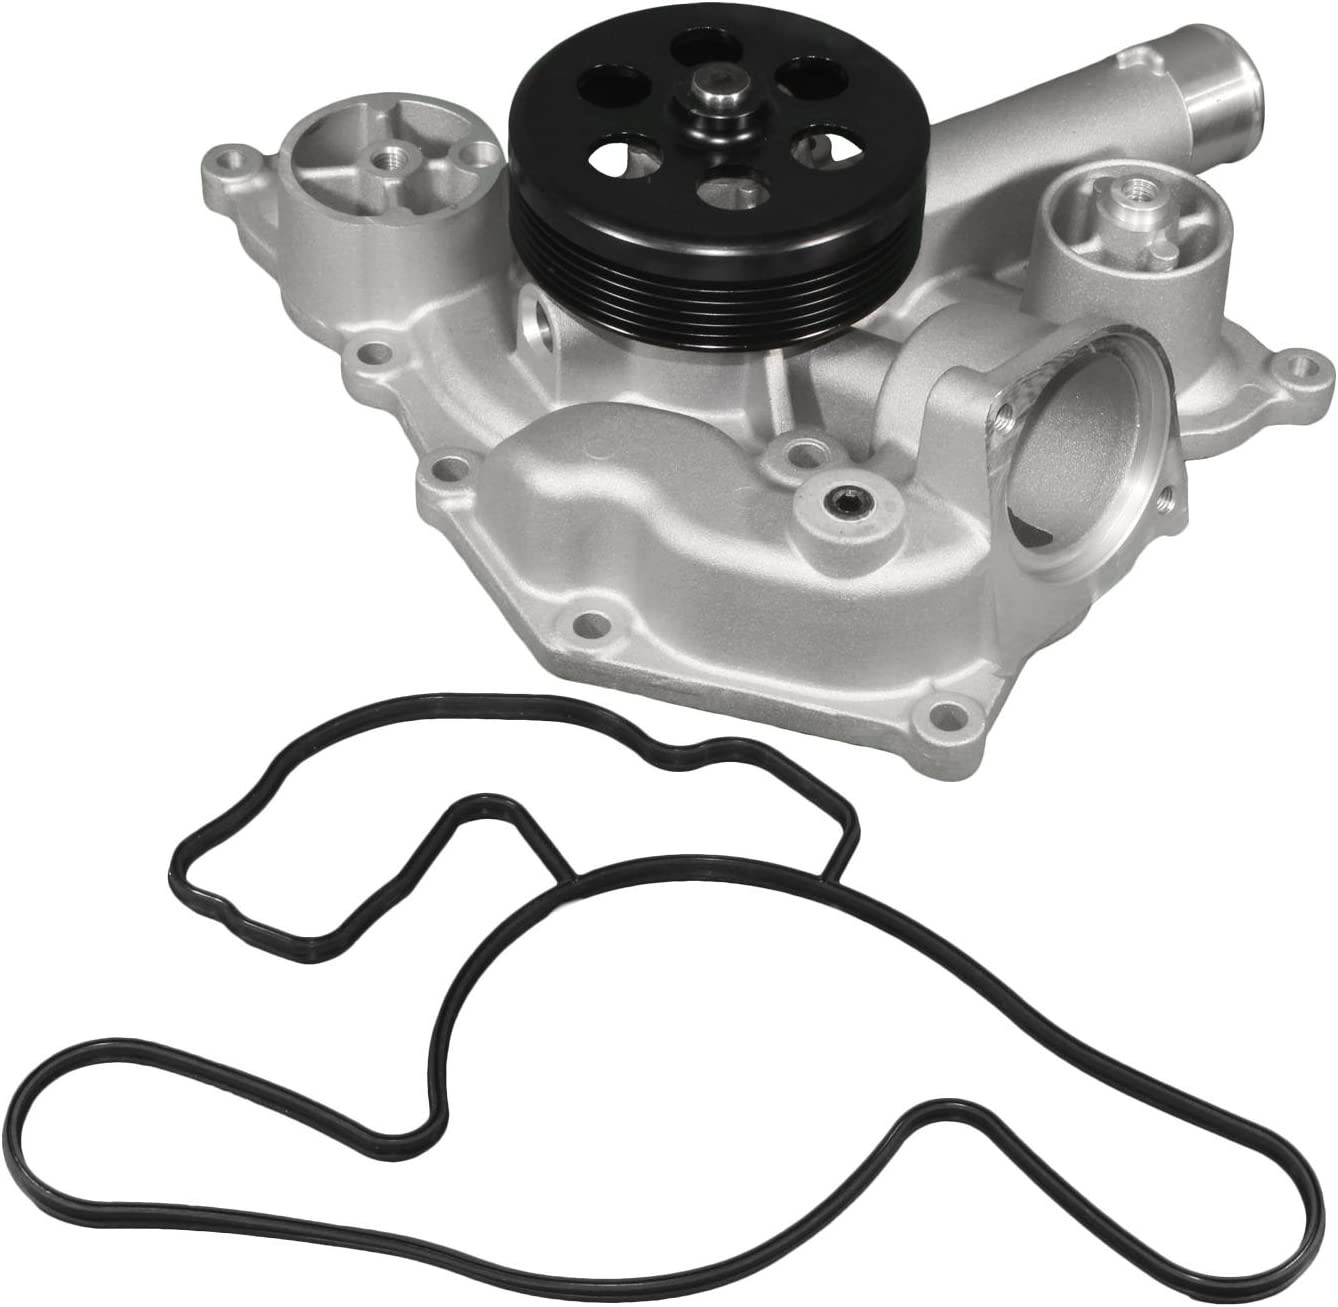 ACDelco 252-899 Professional Water Pump Kit